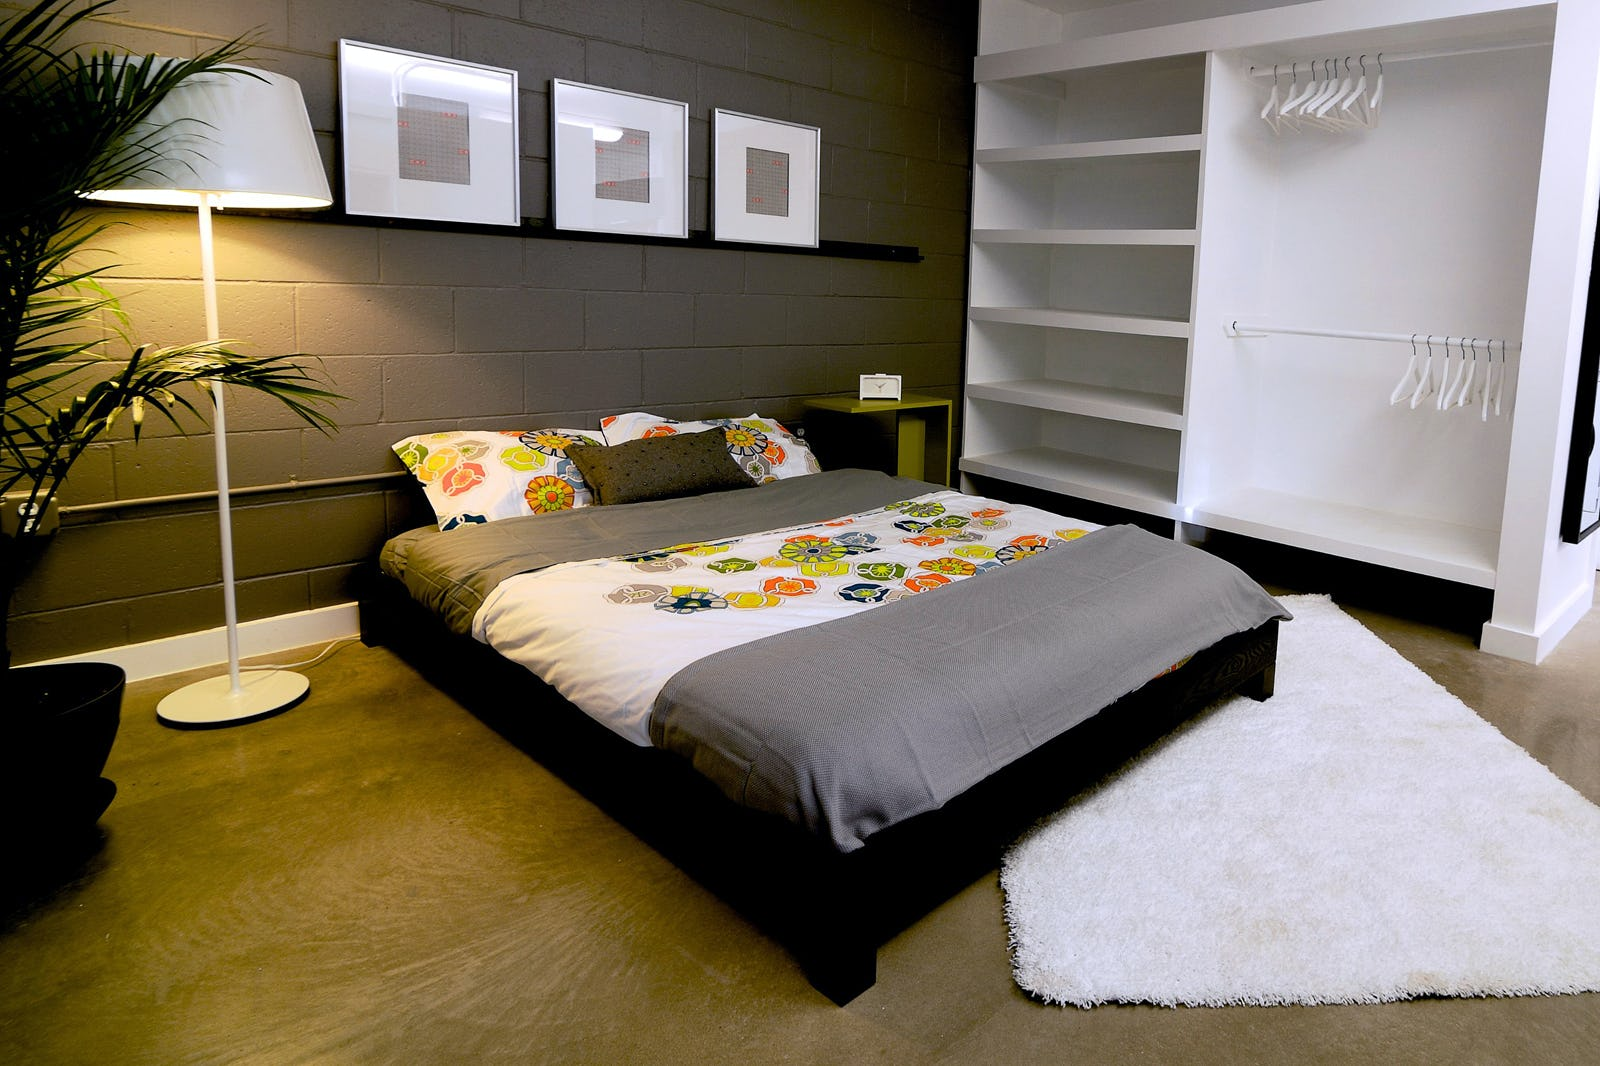 3 2 eco bed